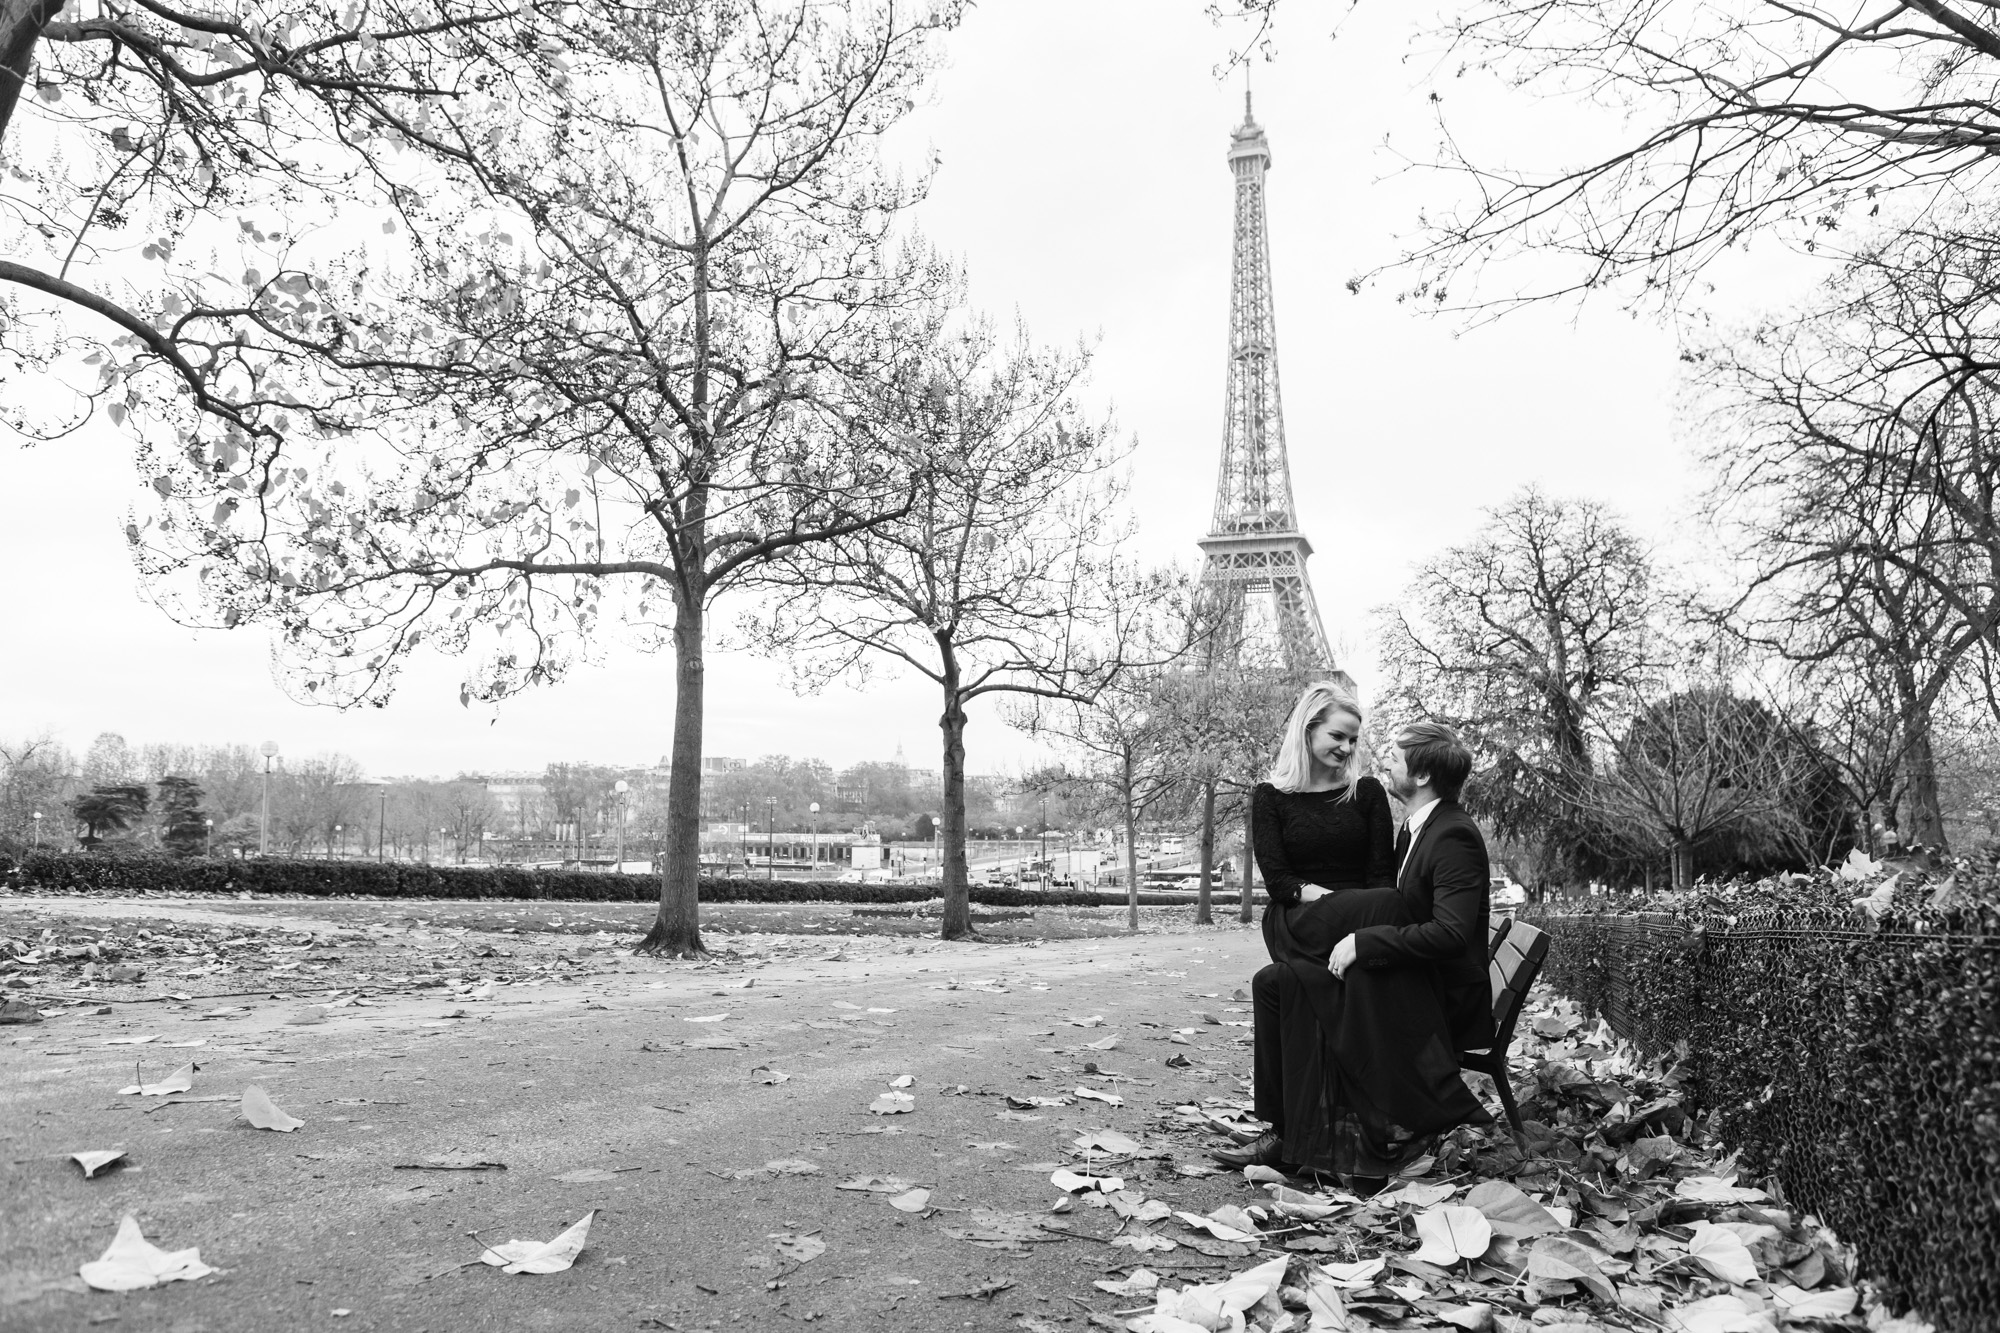 Couple engagement portrait in black and white by the Eiffel Tower captured by Photographer in Paris Federico Guendel